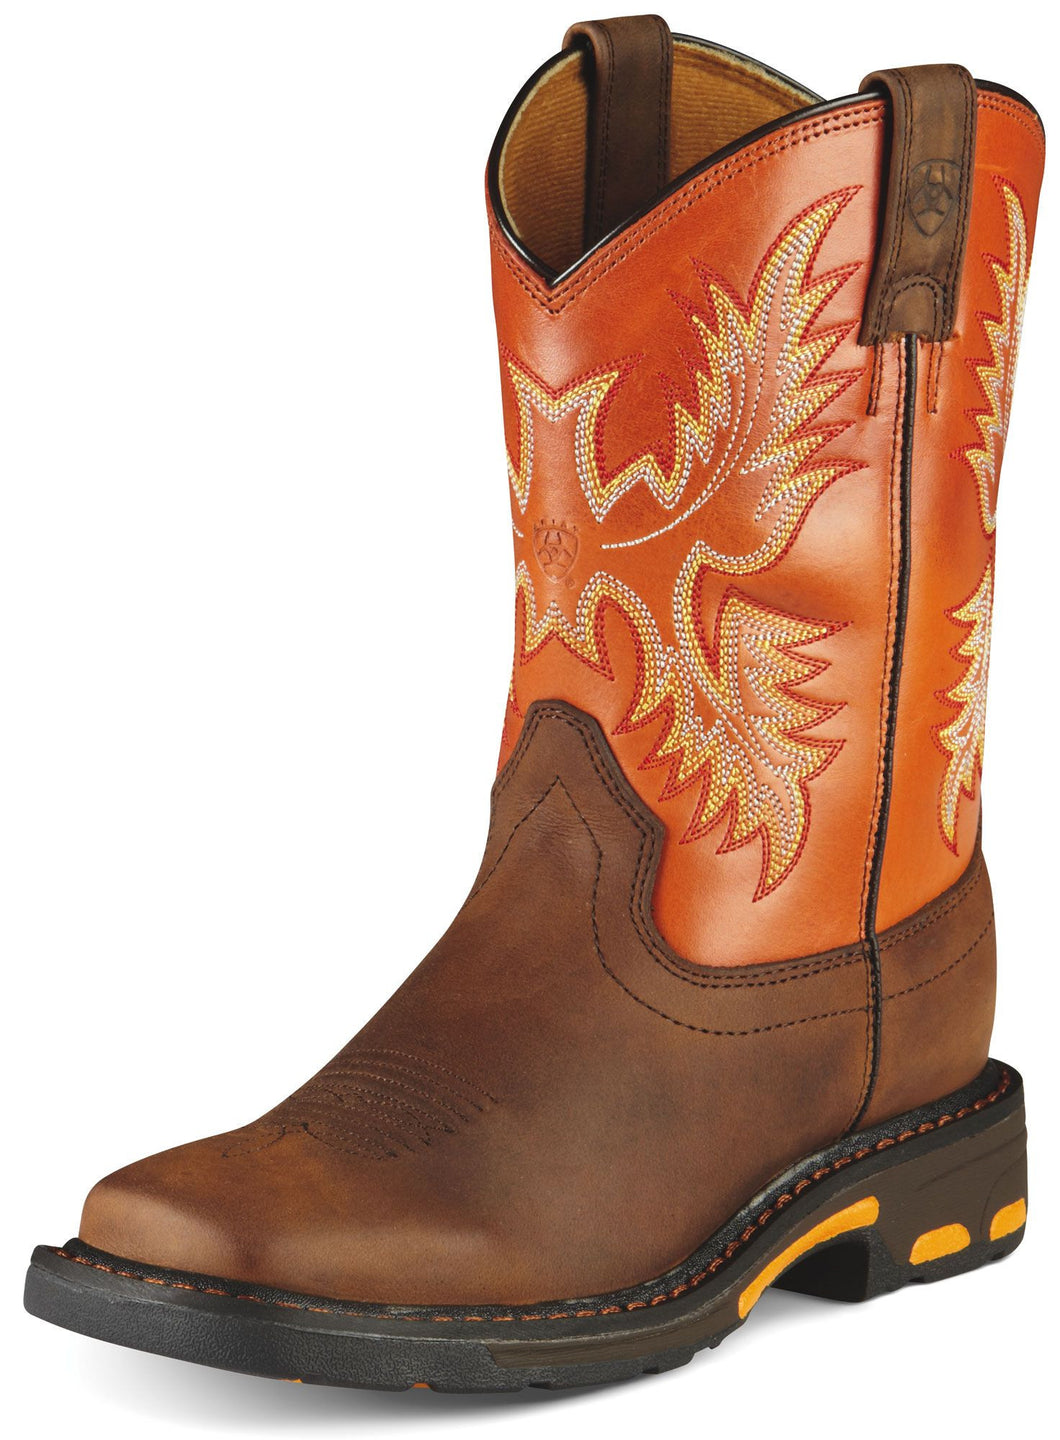 Ariat Workhog Square Toe Boot - 10007837